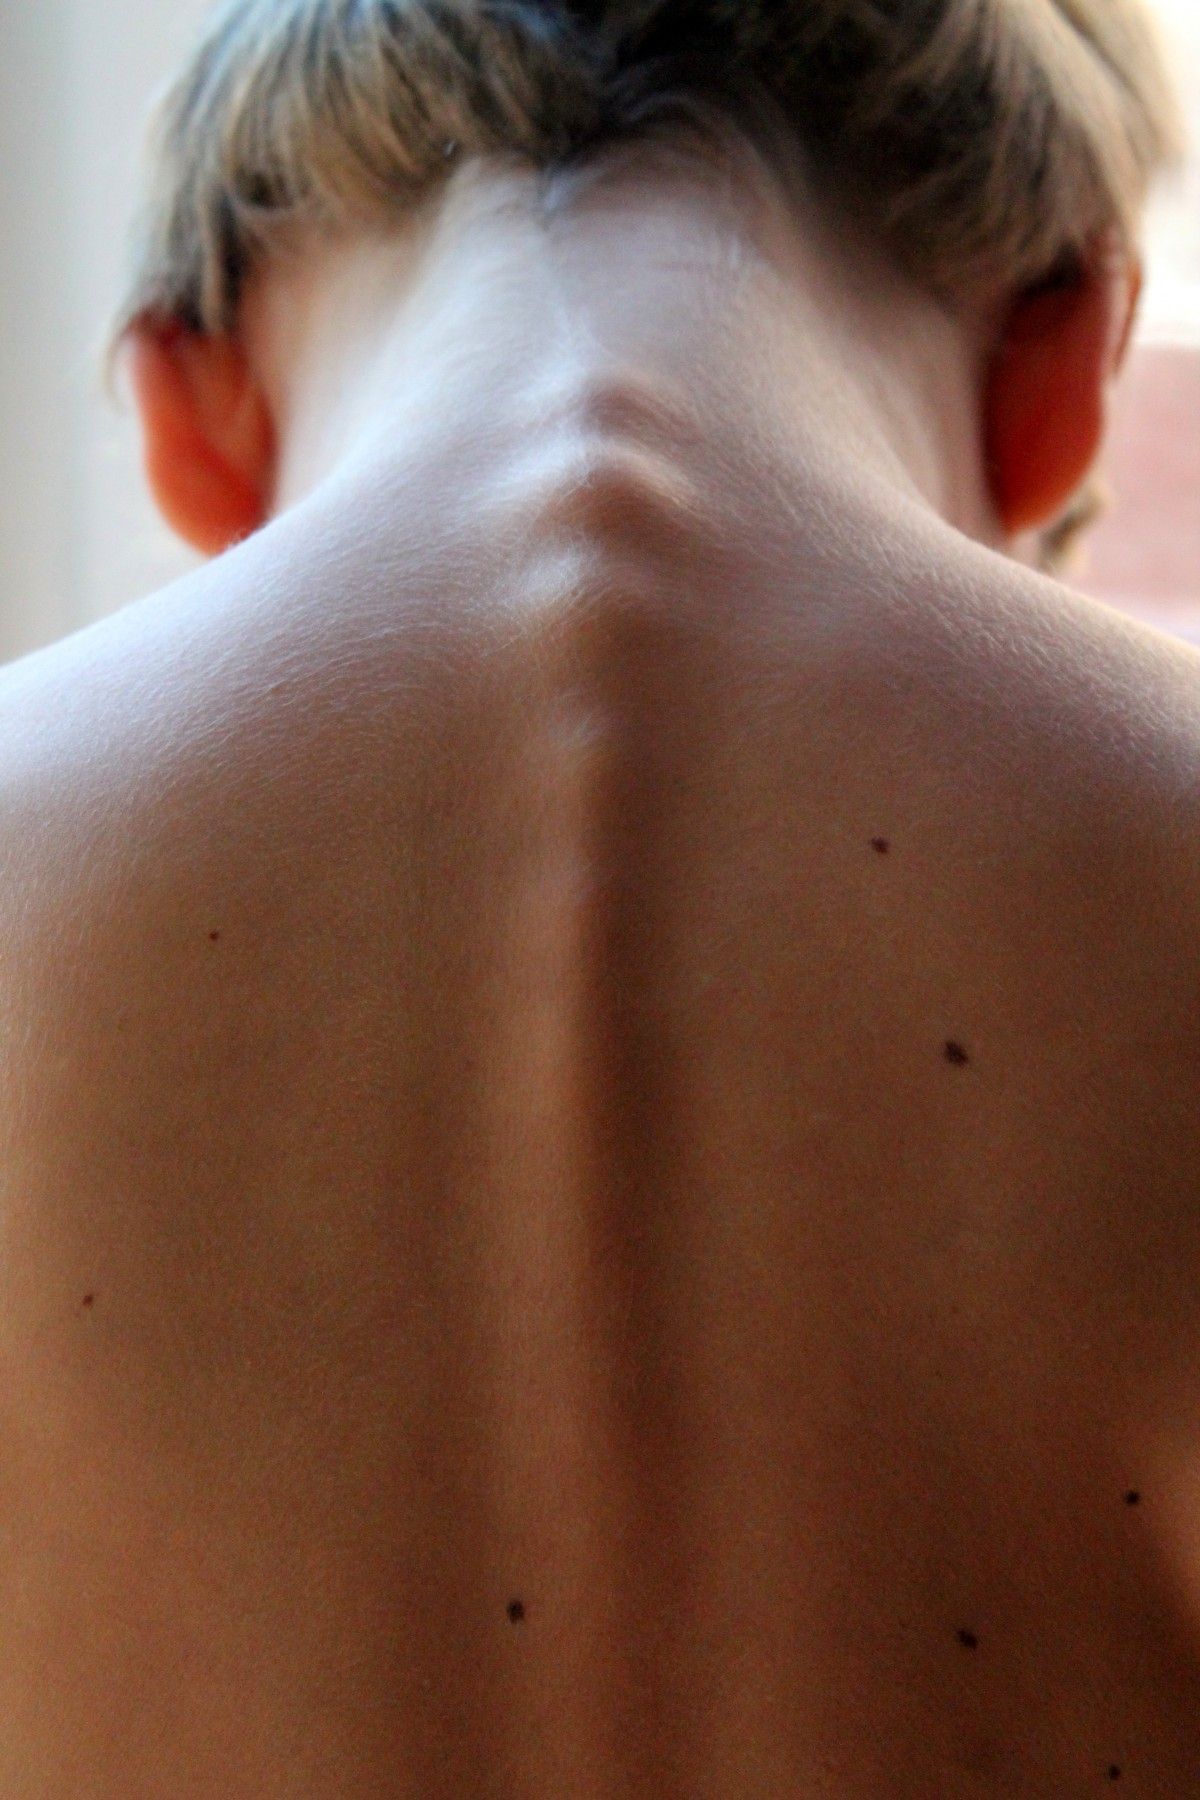 The back of a person's neck